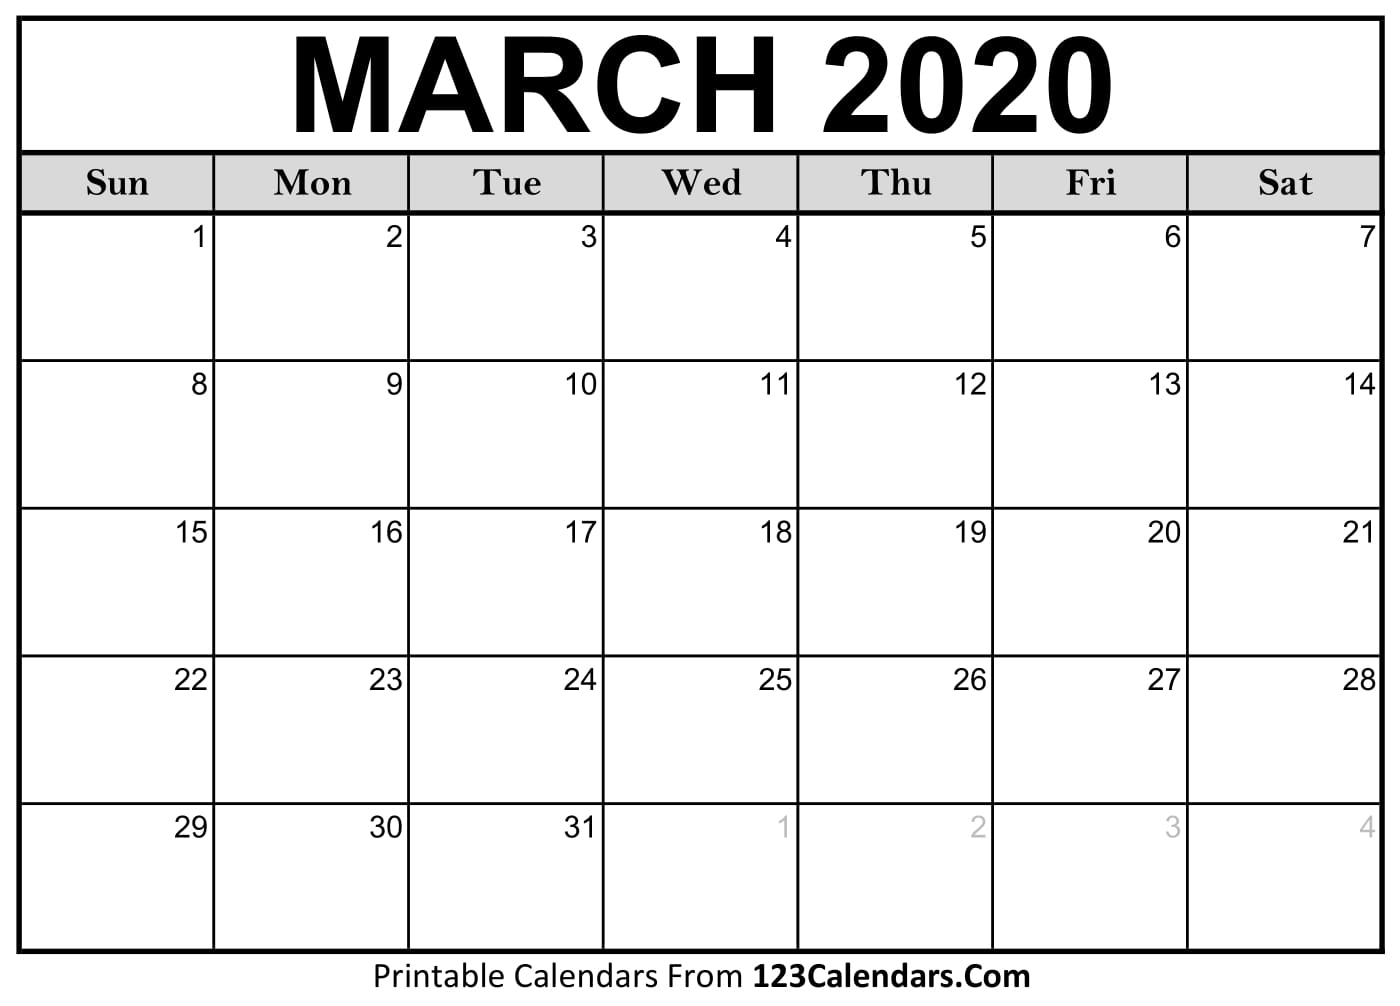 Calendar Month March 2020 - Wpa.wpart.co